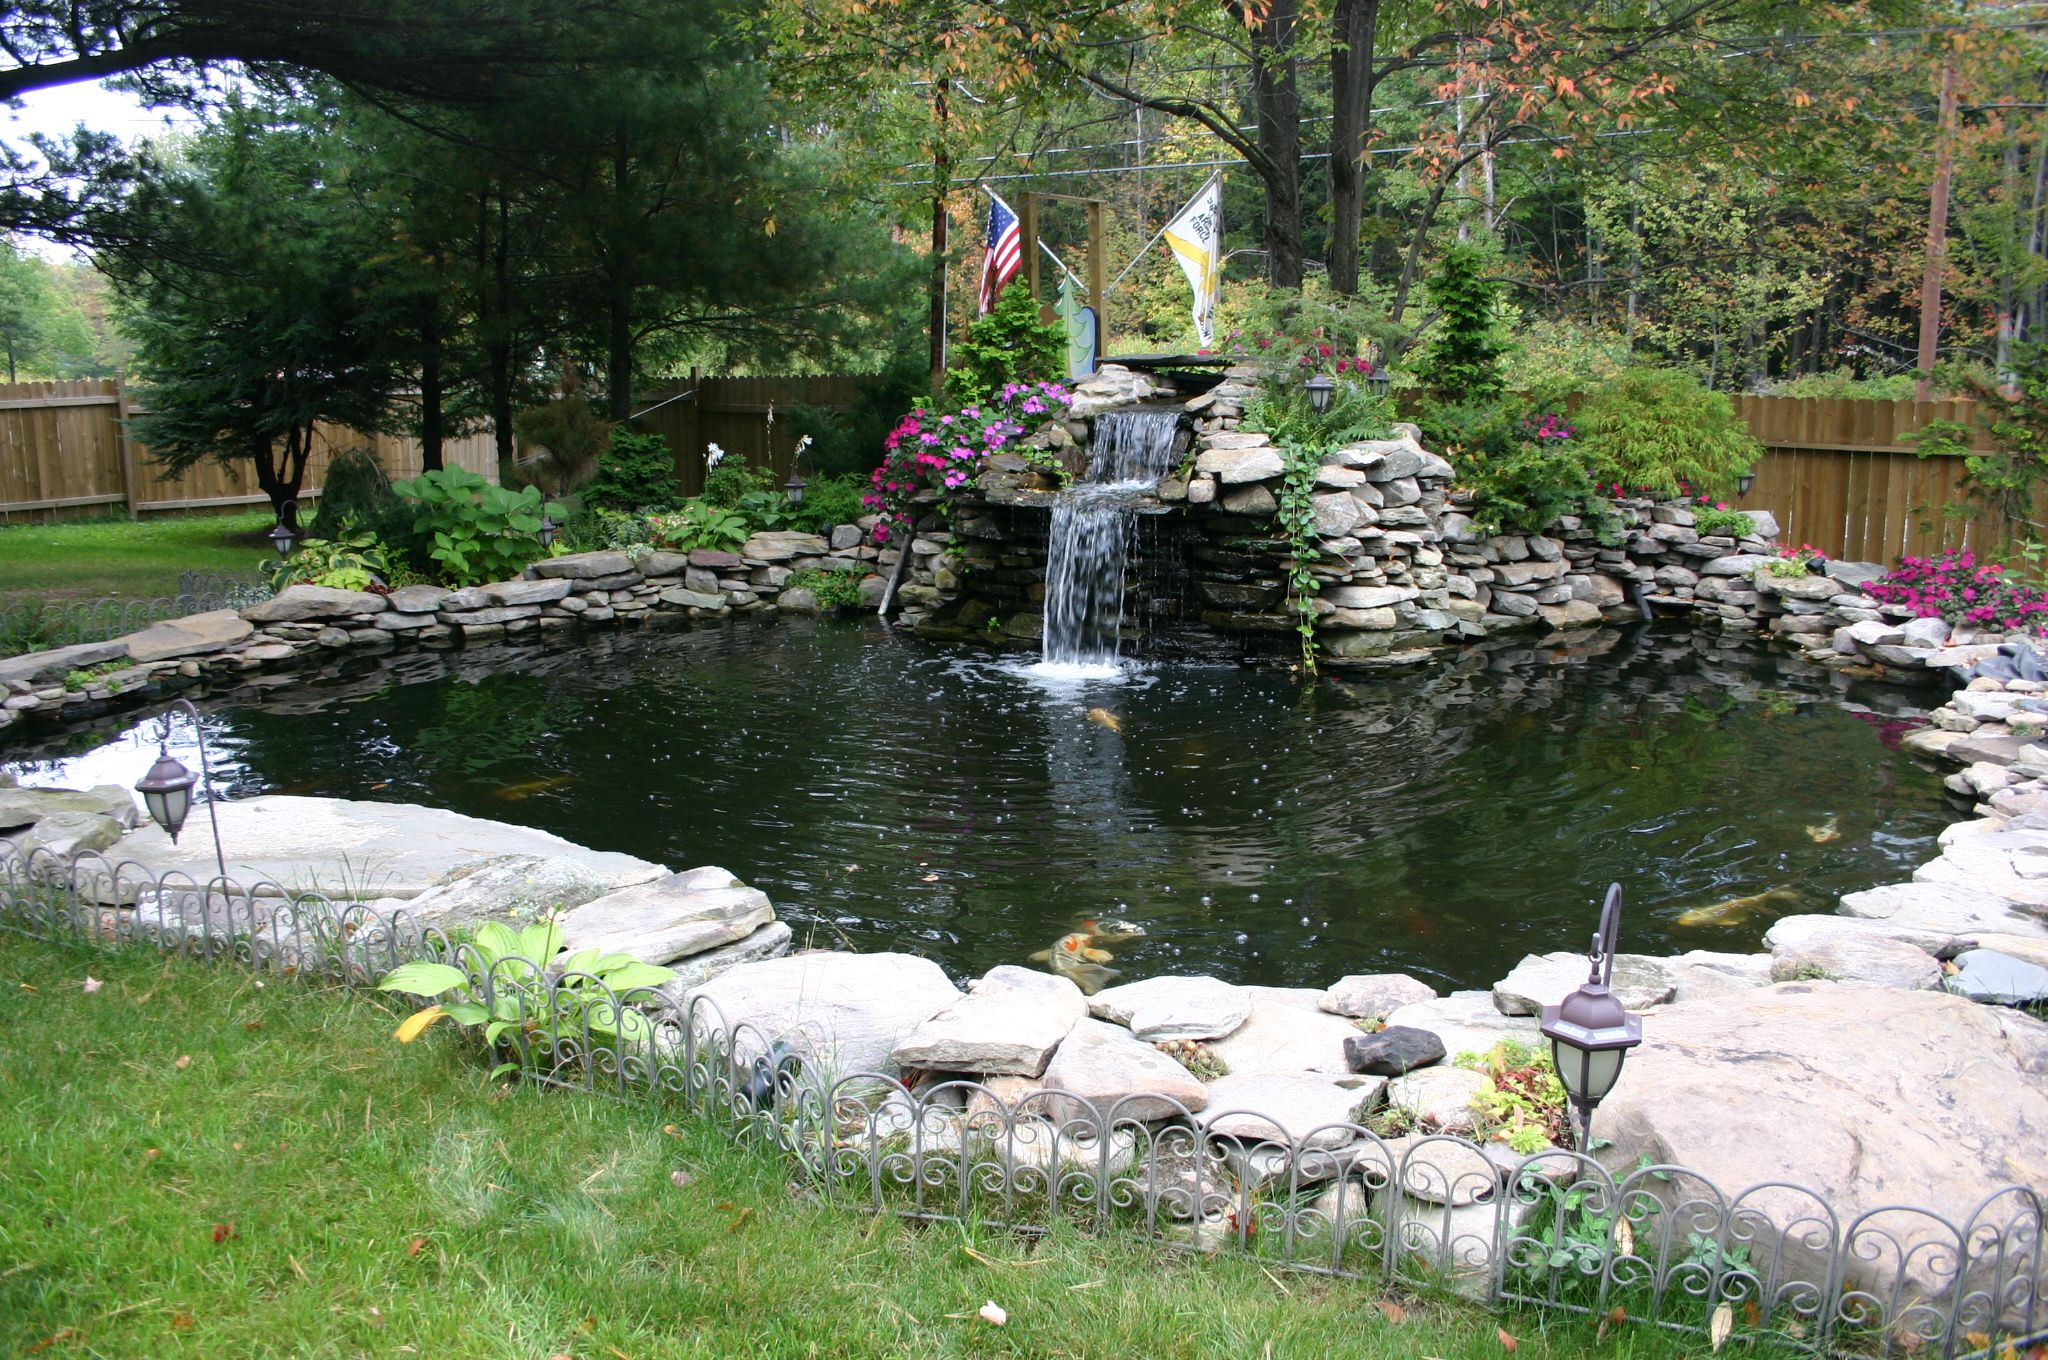 Pin By Wendy Grimmett On Gardens Water Gardens Pond Waterfalls Backyard Pond Water Features